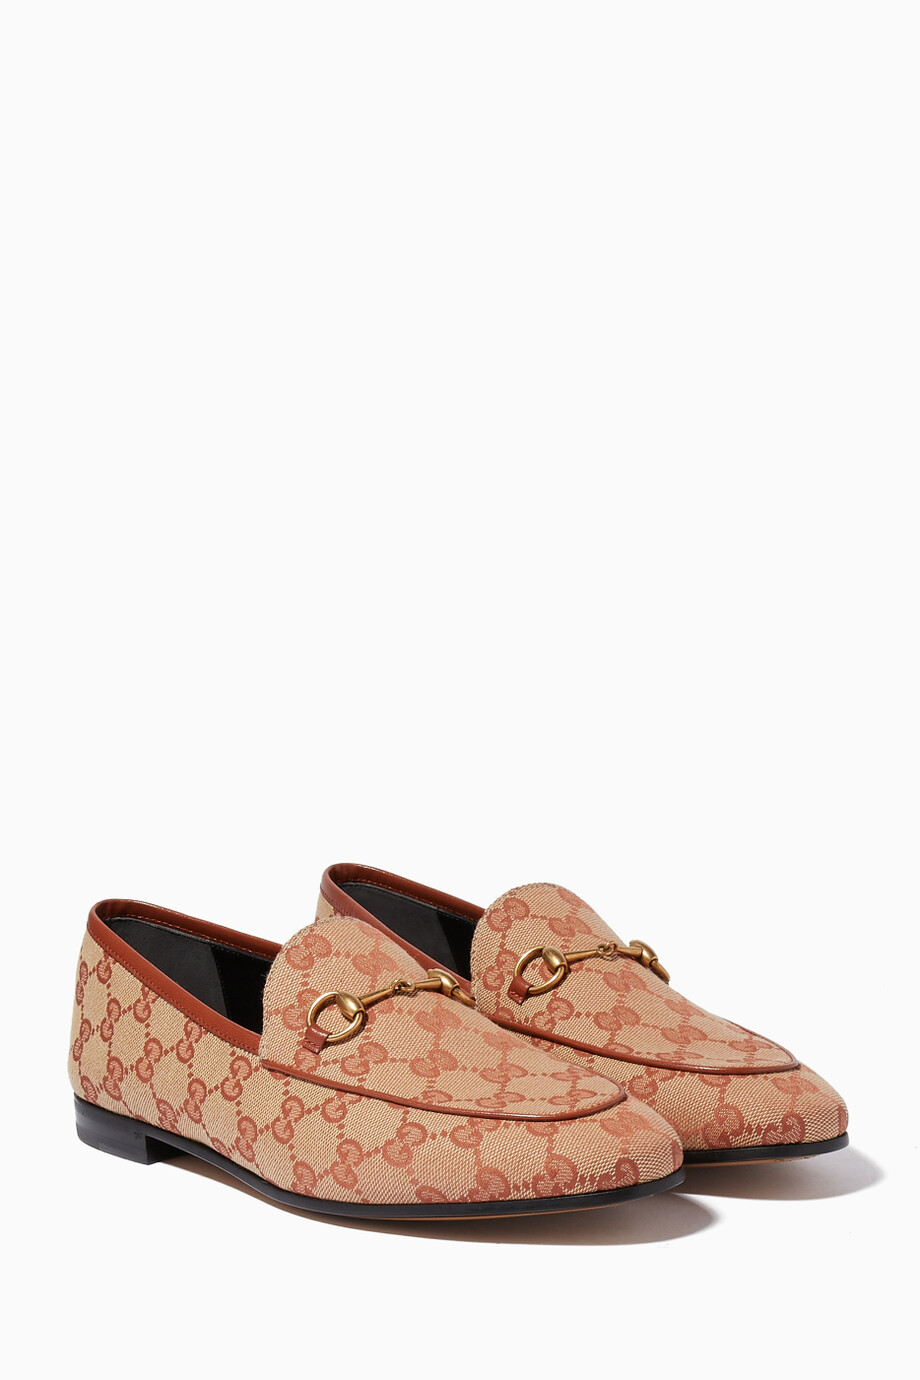 d66ce86b384 Shop Gucci Brown Brick Red   Beige Jordaan GG Canvas Loafers for ...